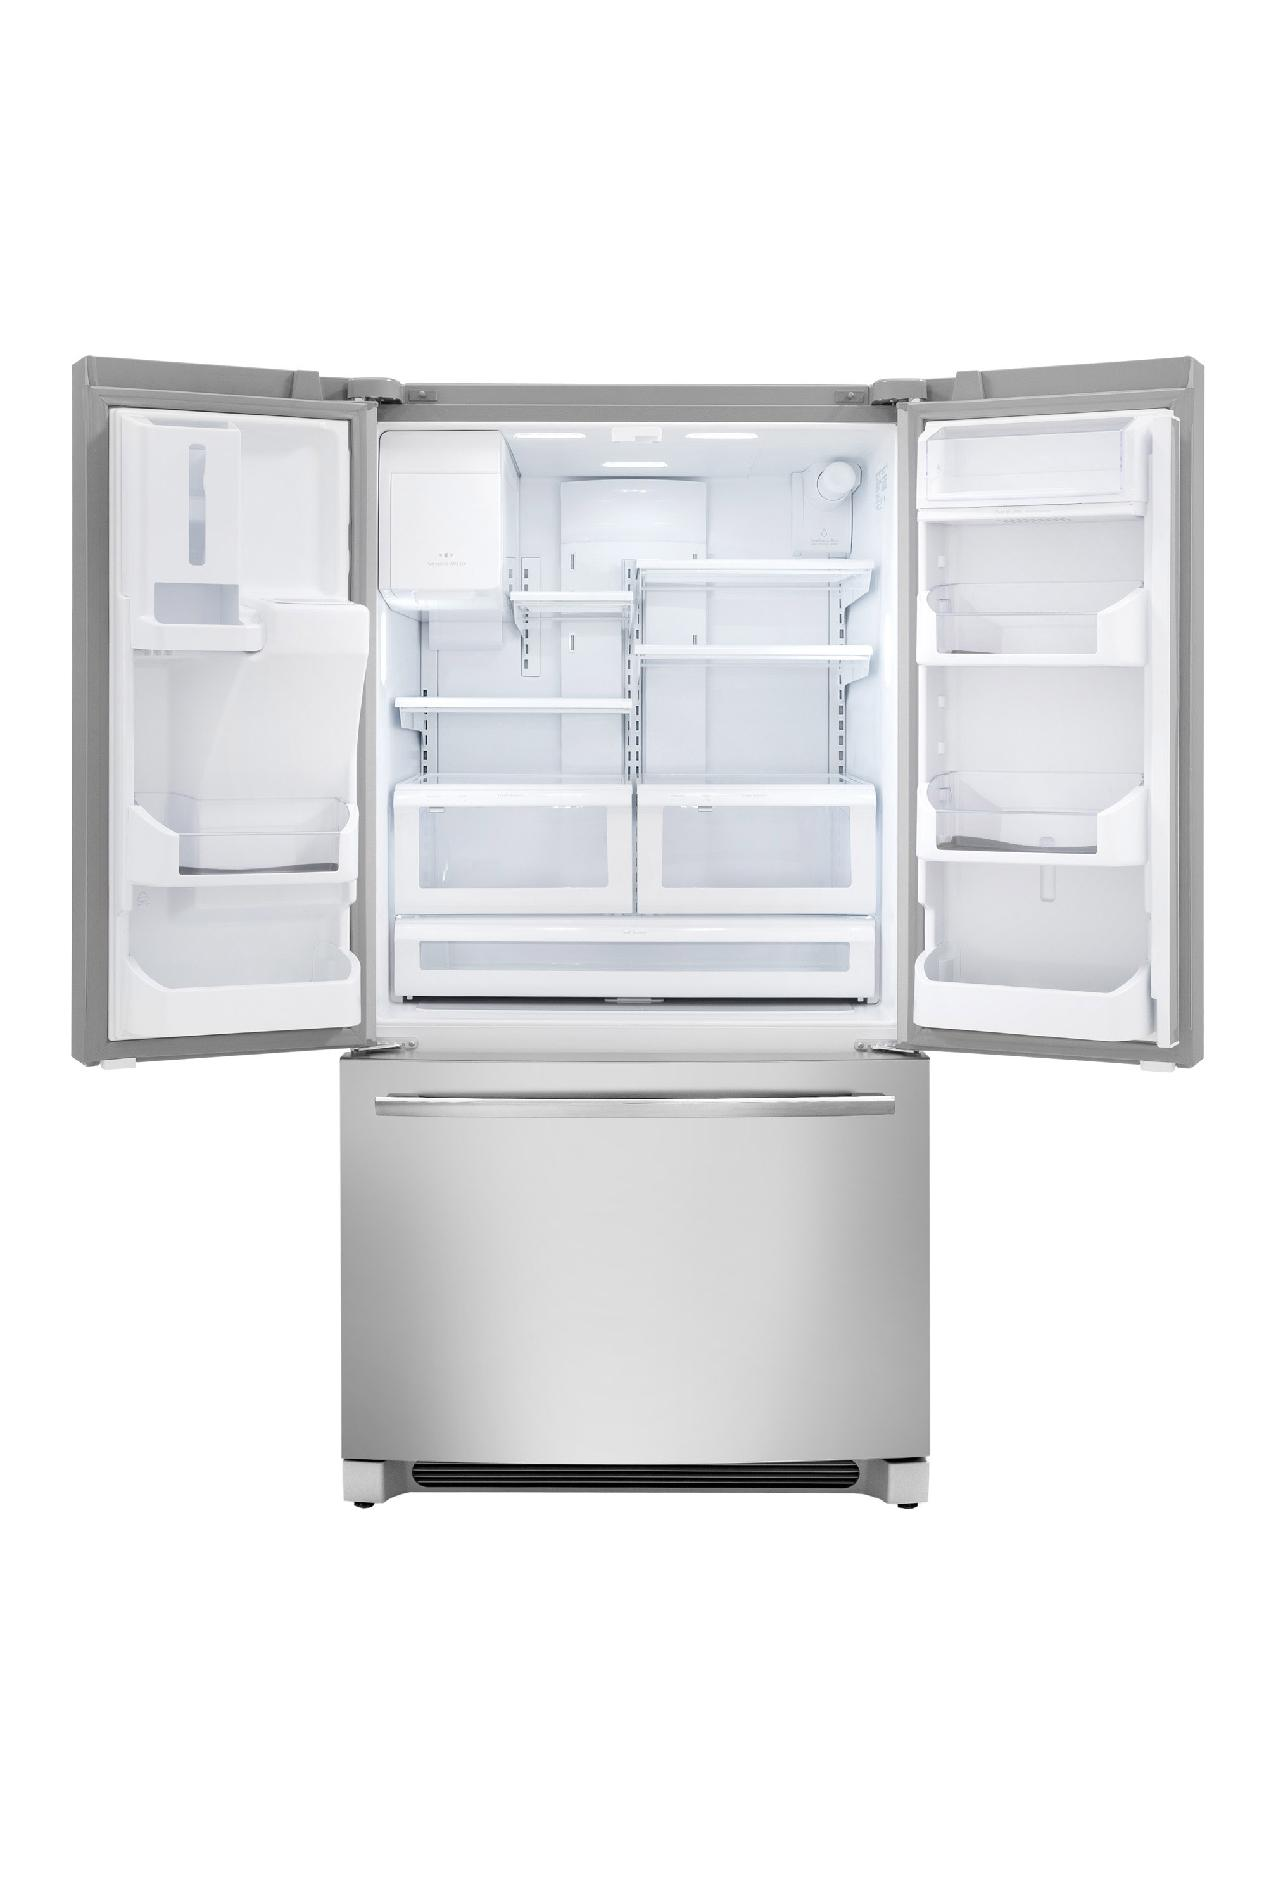 Frigidaire Professional 27.9 cu. ft. French Door Refrigerator - Stainless Steel